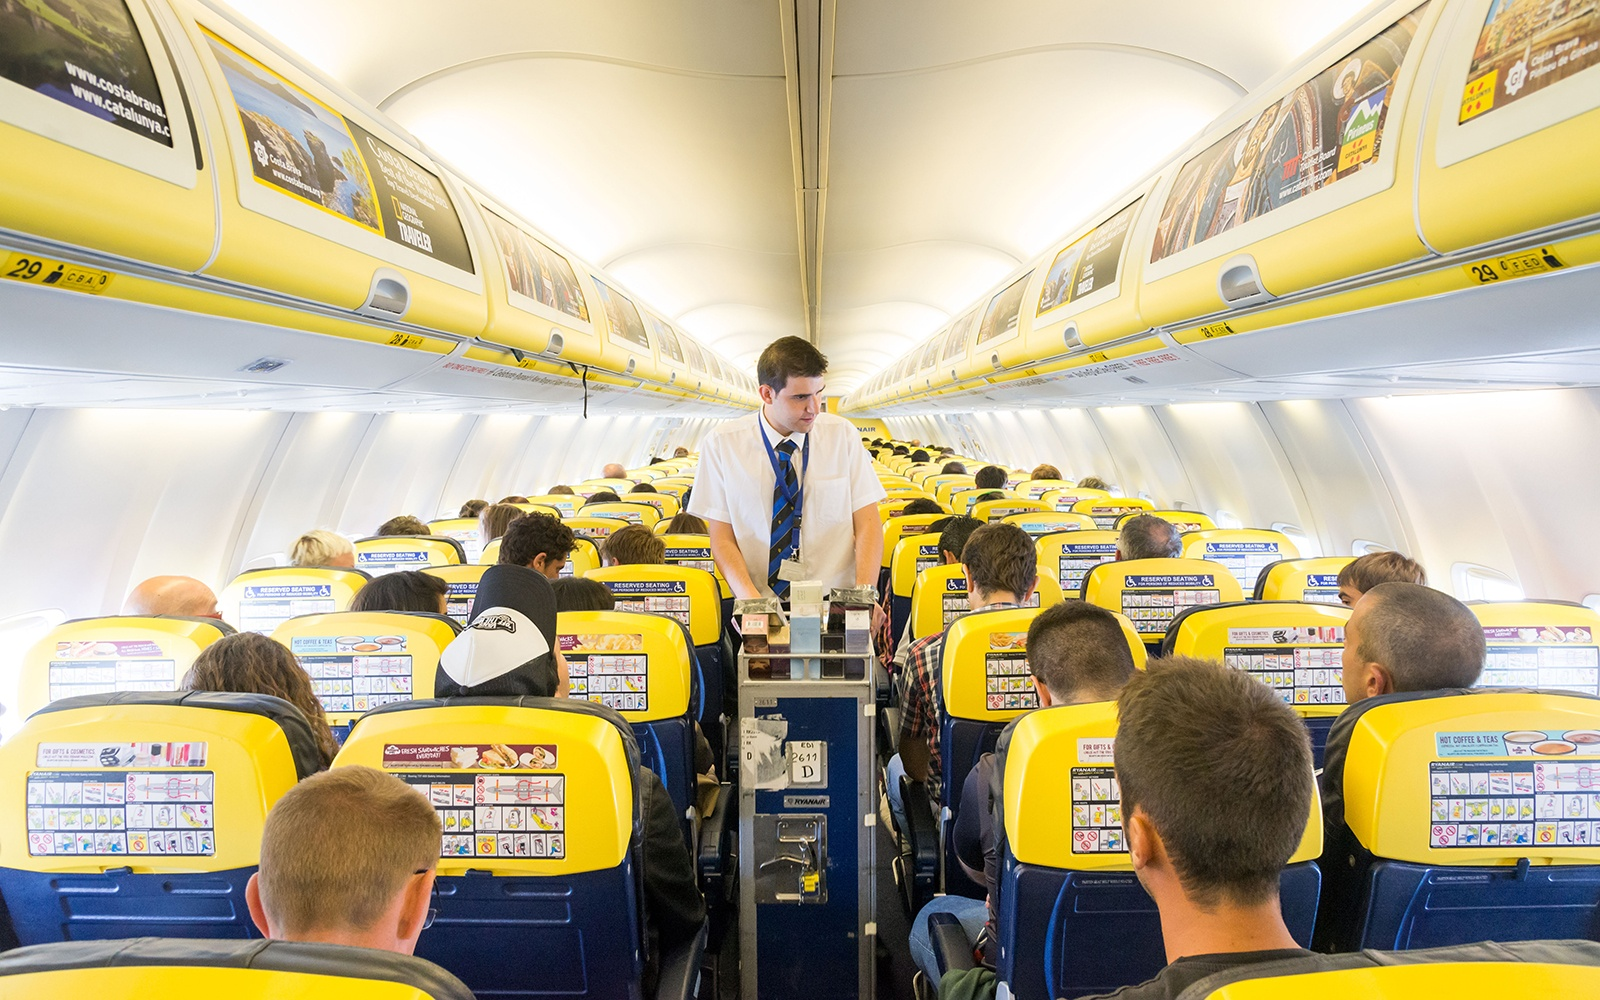 How many names can you think of for Ryanair? The airline, ryanair, the company. What else?